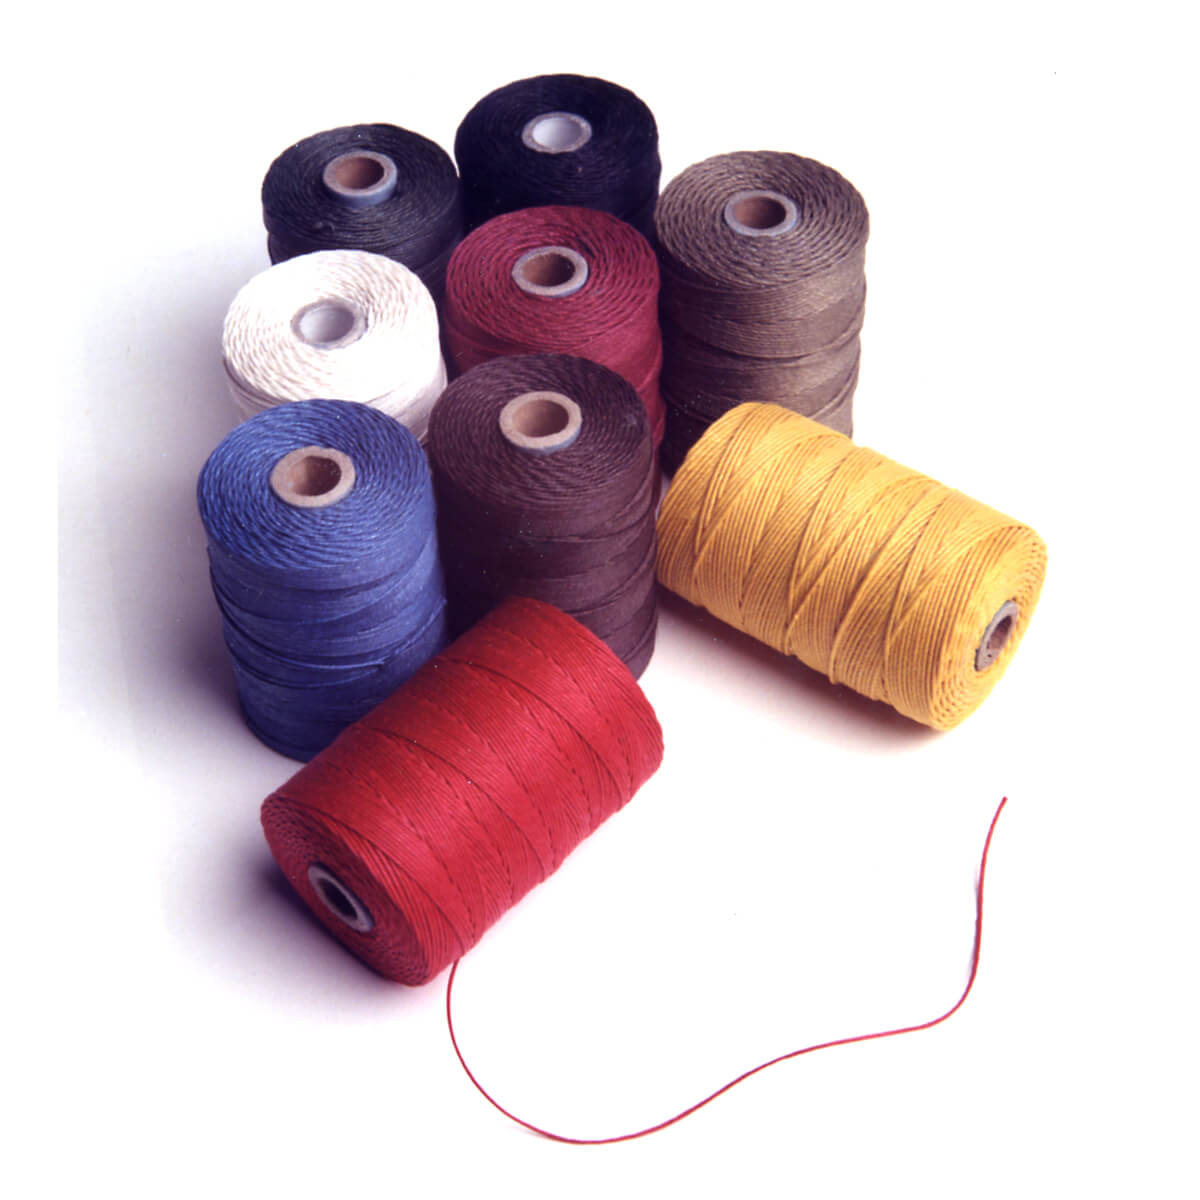 Irish Linen Bookbinding Thread: Unbleached & Colored